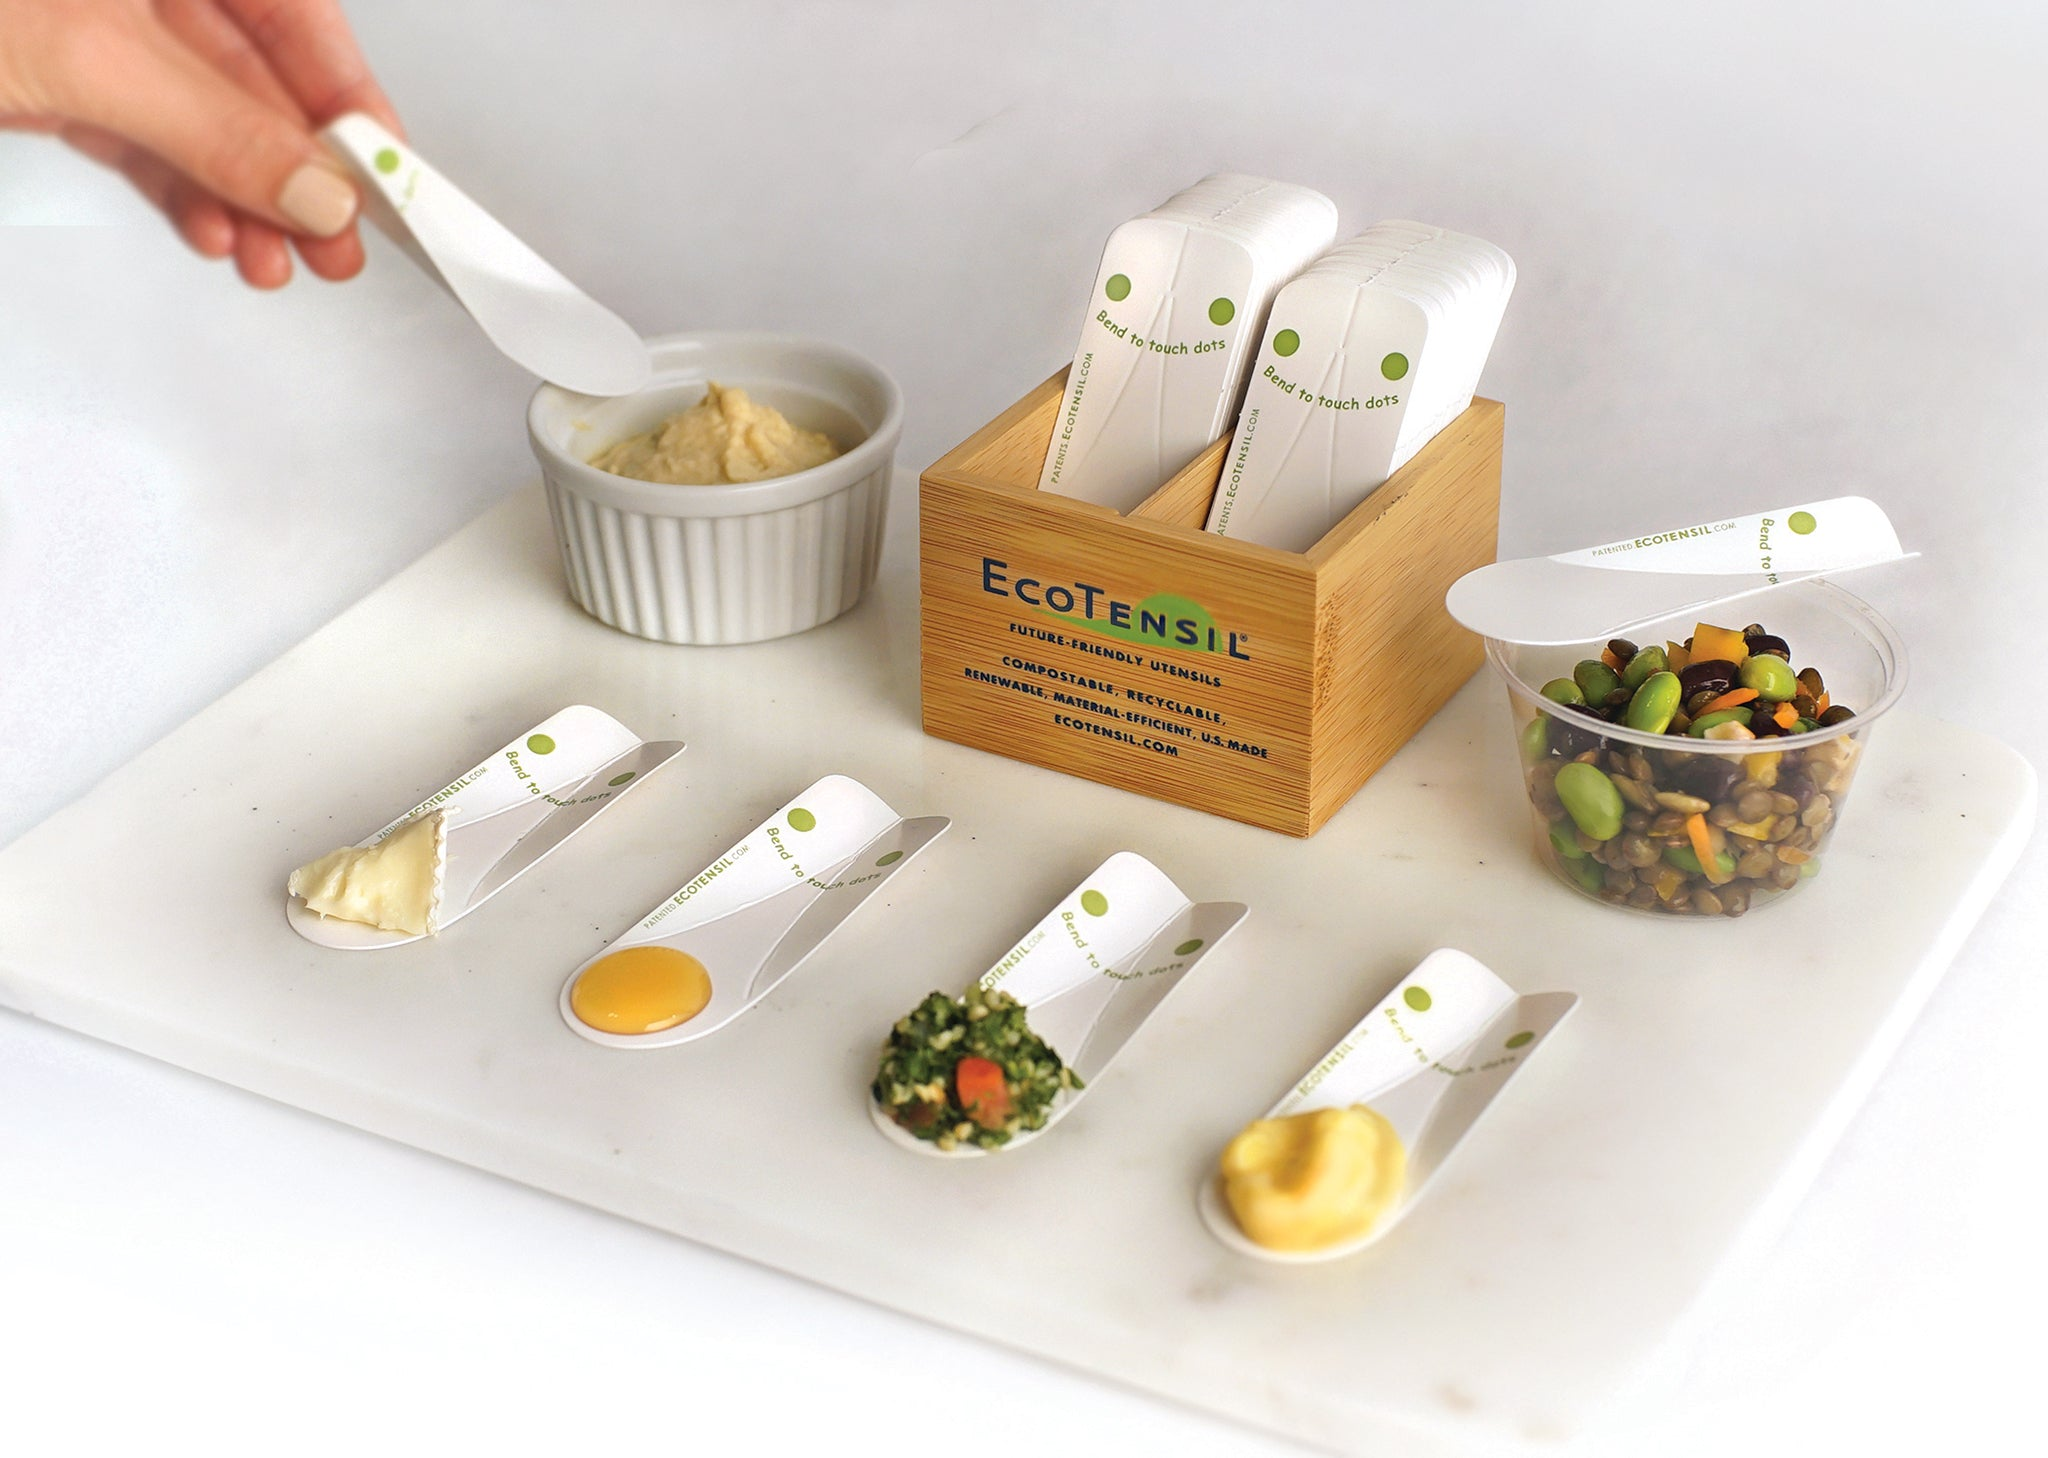 EcoTaster sampling spoons, by EcoTensil are a great way to achieve your zero waste goals for food demos!